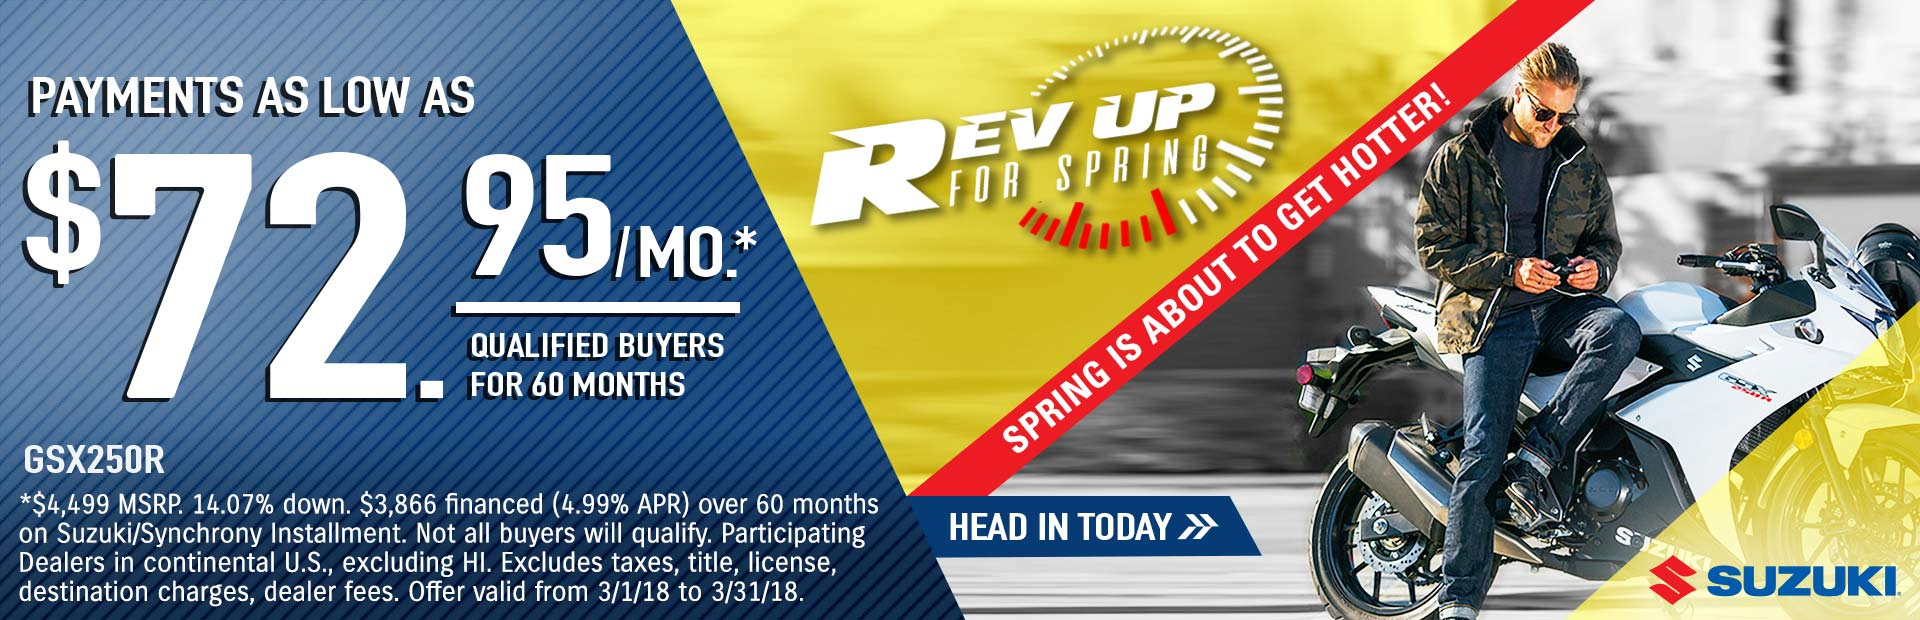 Suzuki: Rev Up for Spring - GSX250R